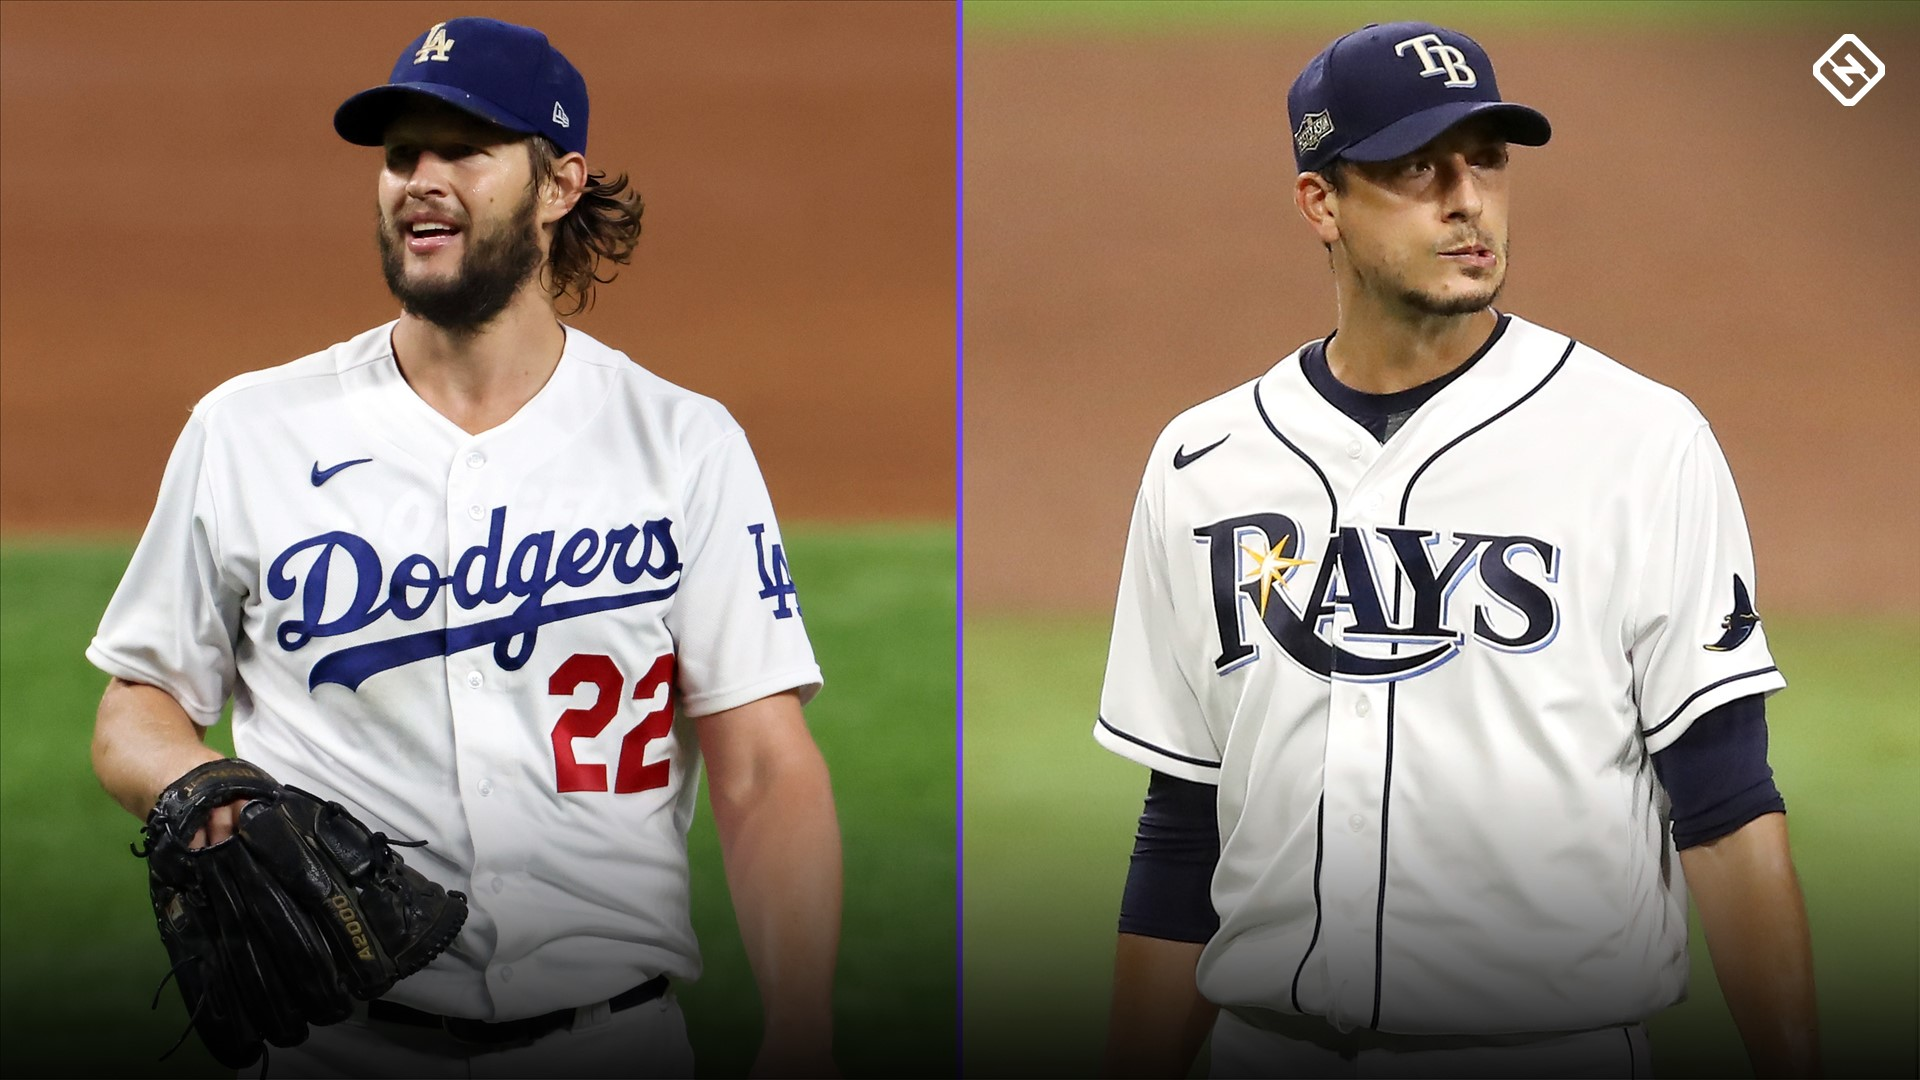 Dodgers vs. Rays payroll breakdown: 2020 World Series tests luxury vs. cost-conscious MLB models 1